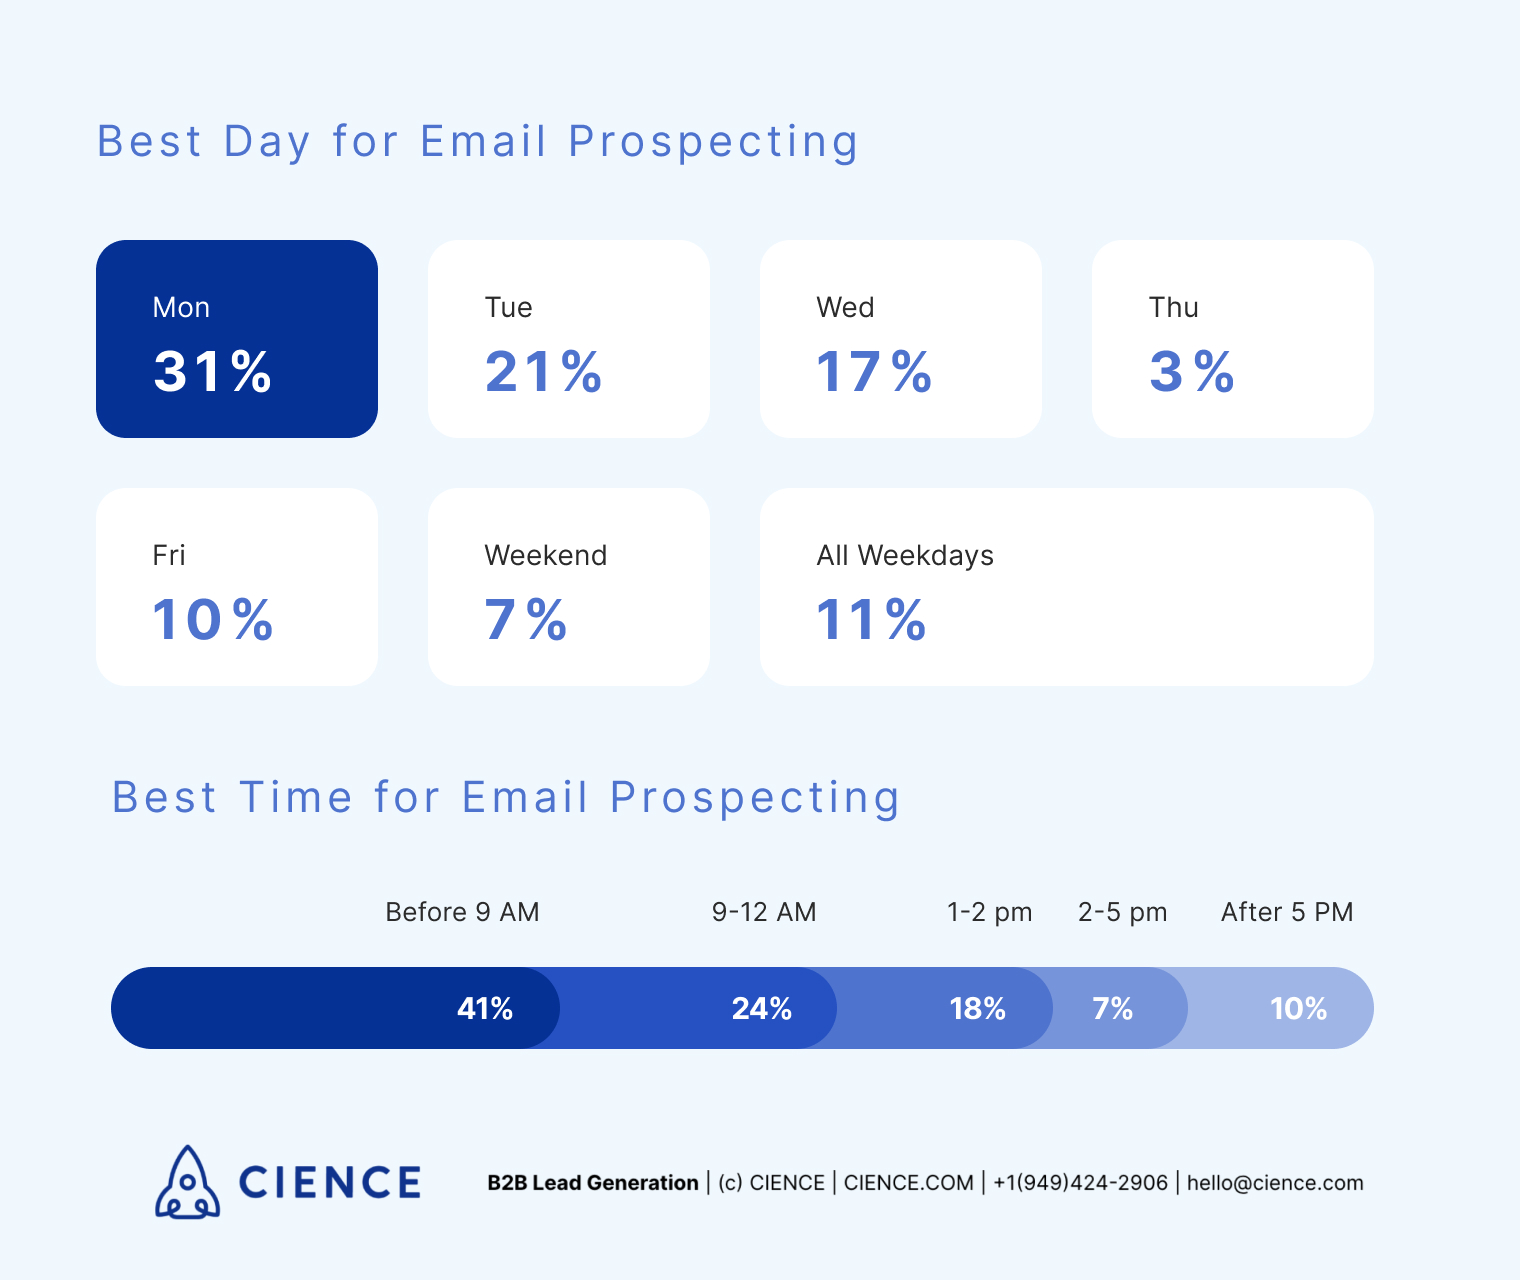 Best day and time for email prospecting